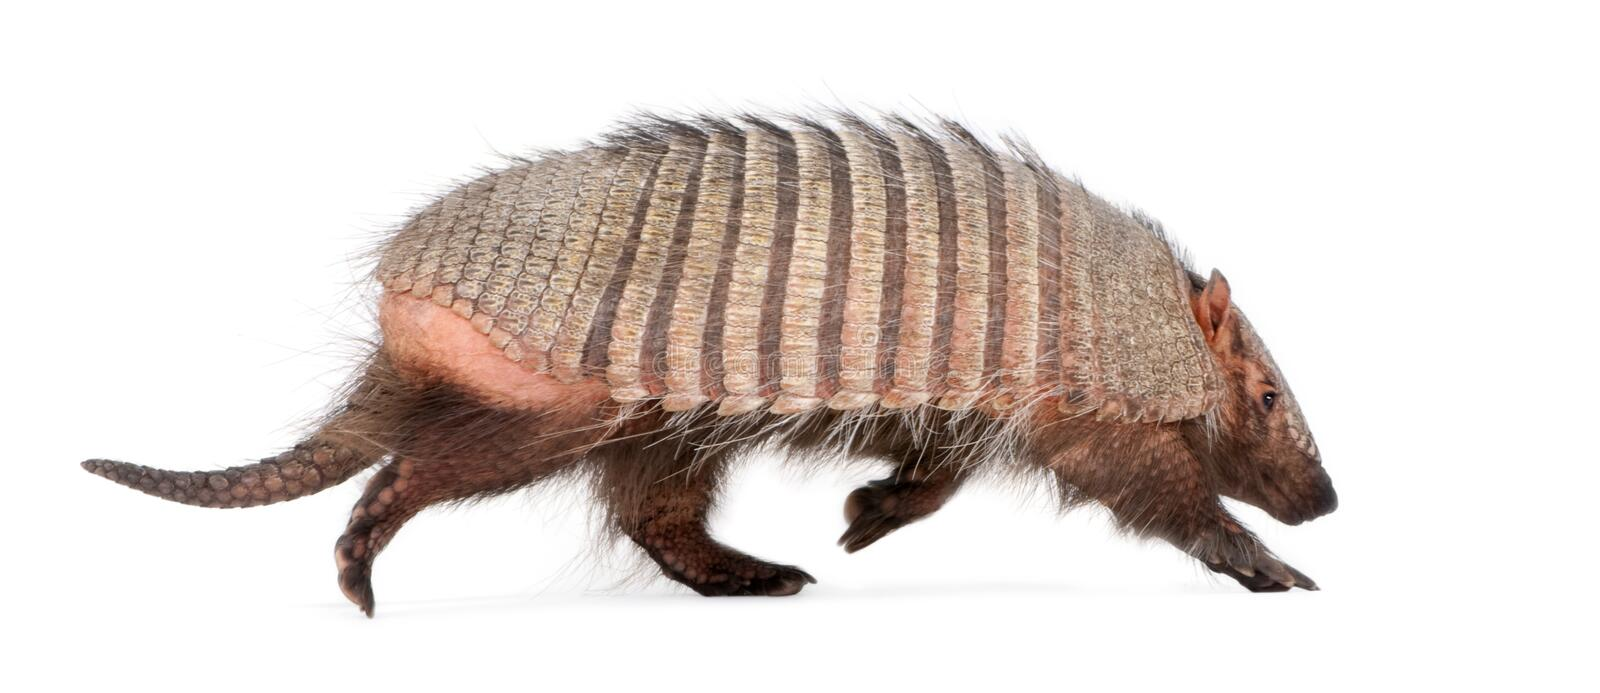 Armadillo - Dasypodidae - Cingulata royalty free stock photos